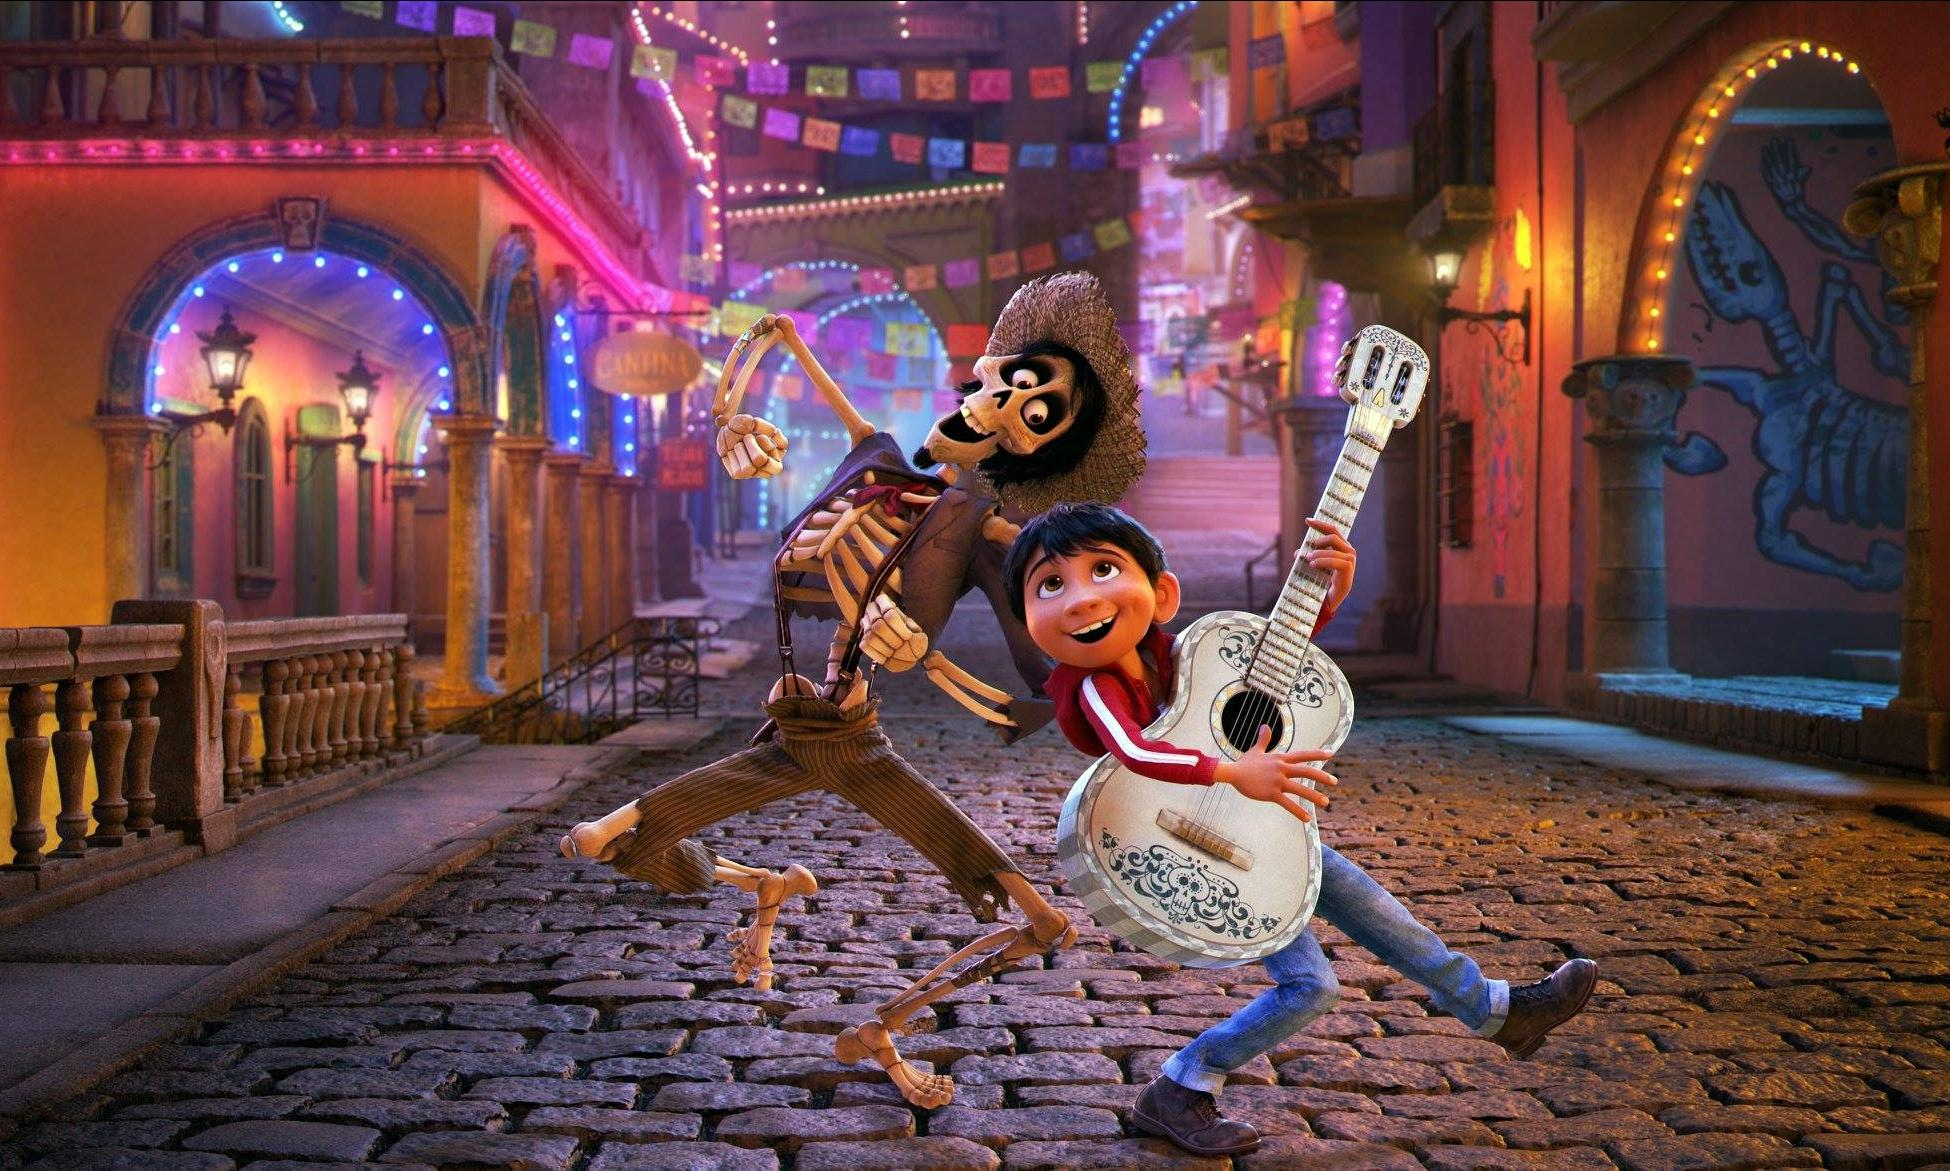 The 50 best films of 2018 in the UK: No 9 – Coco